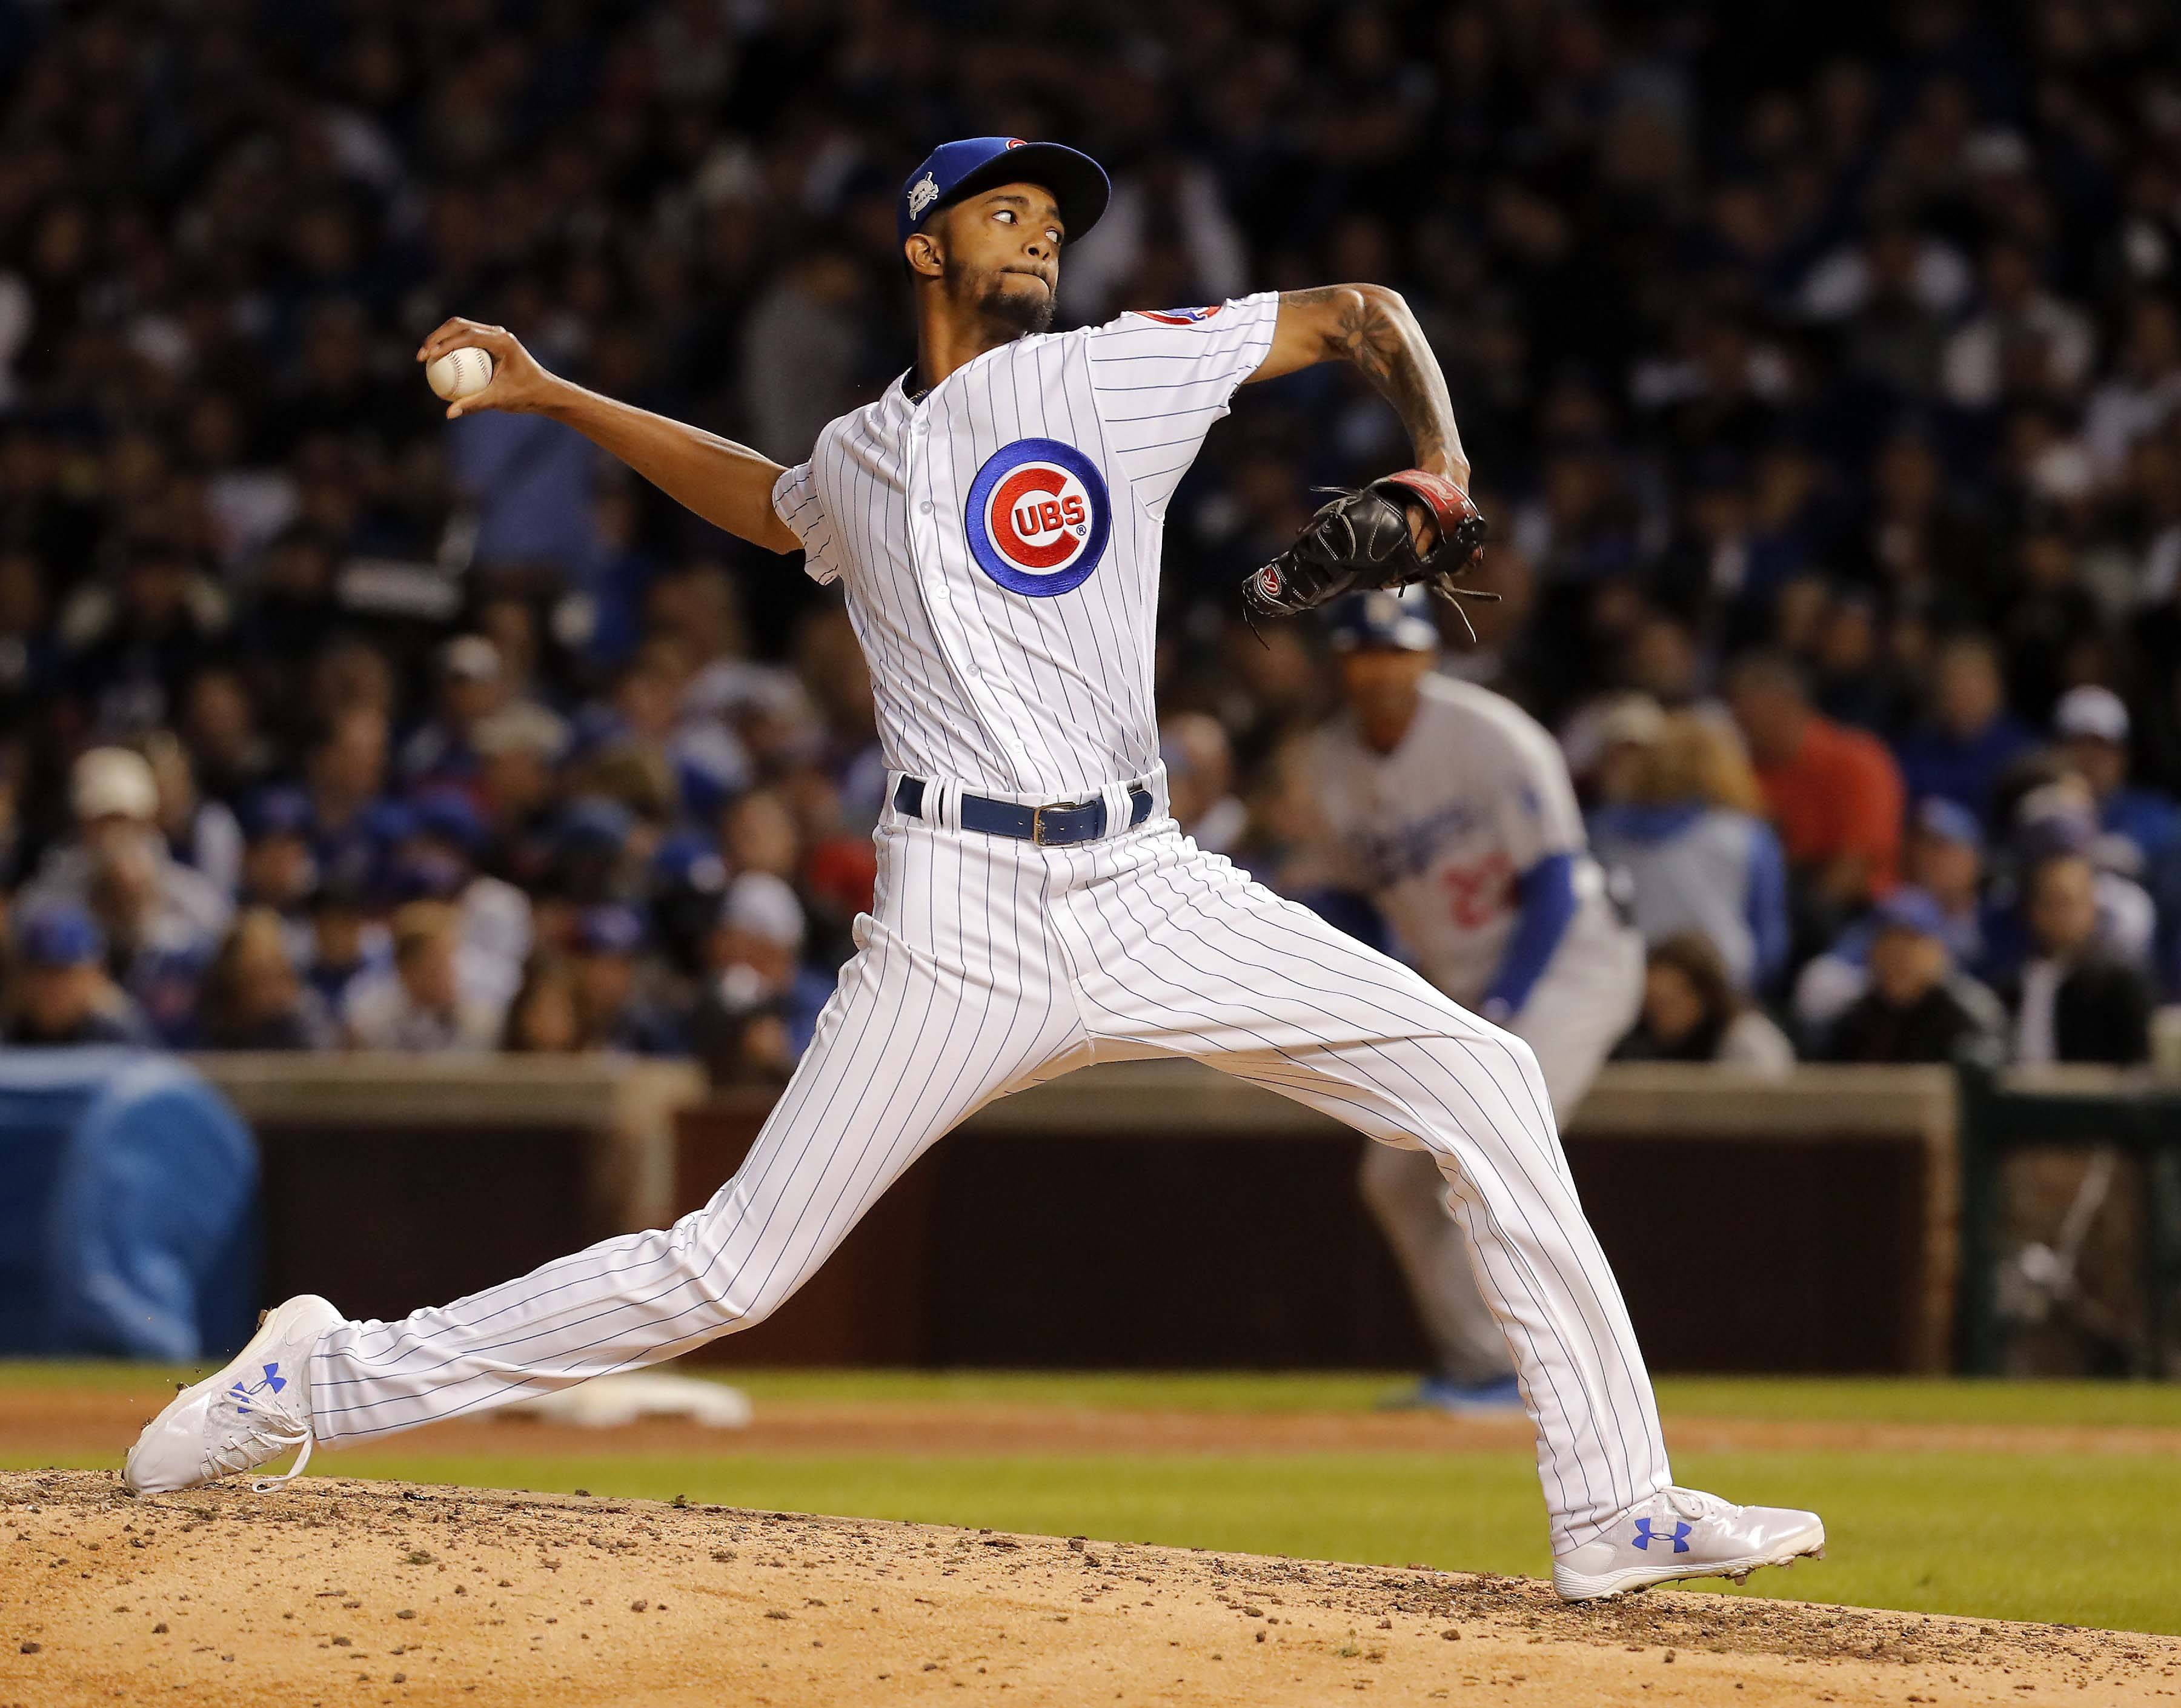 Chicago Cubs relief pitcher Carl Edwards Jr. (6) throws in the sixth inning during Game 3 of the National League Championship Series, Oct, 17 2017, at Wrigley Field in Chicago.